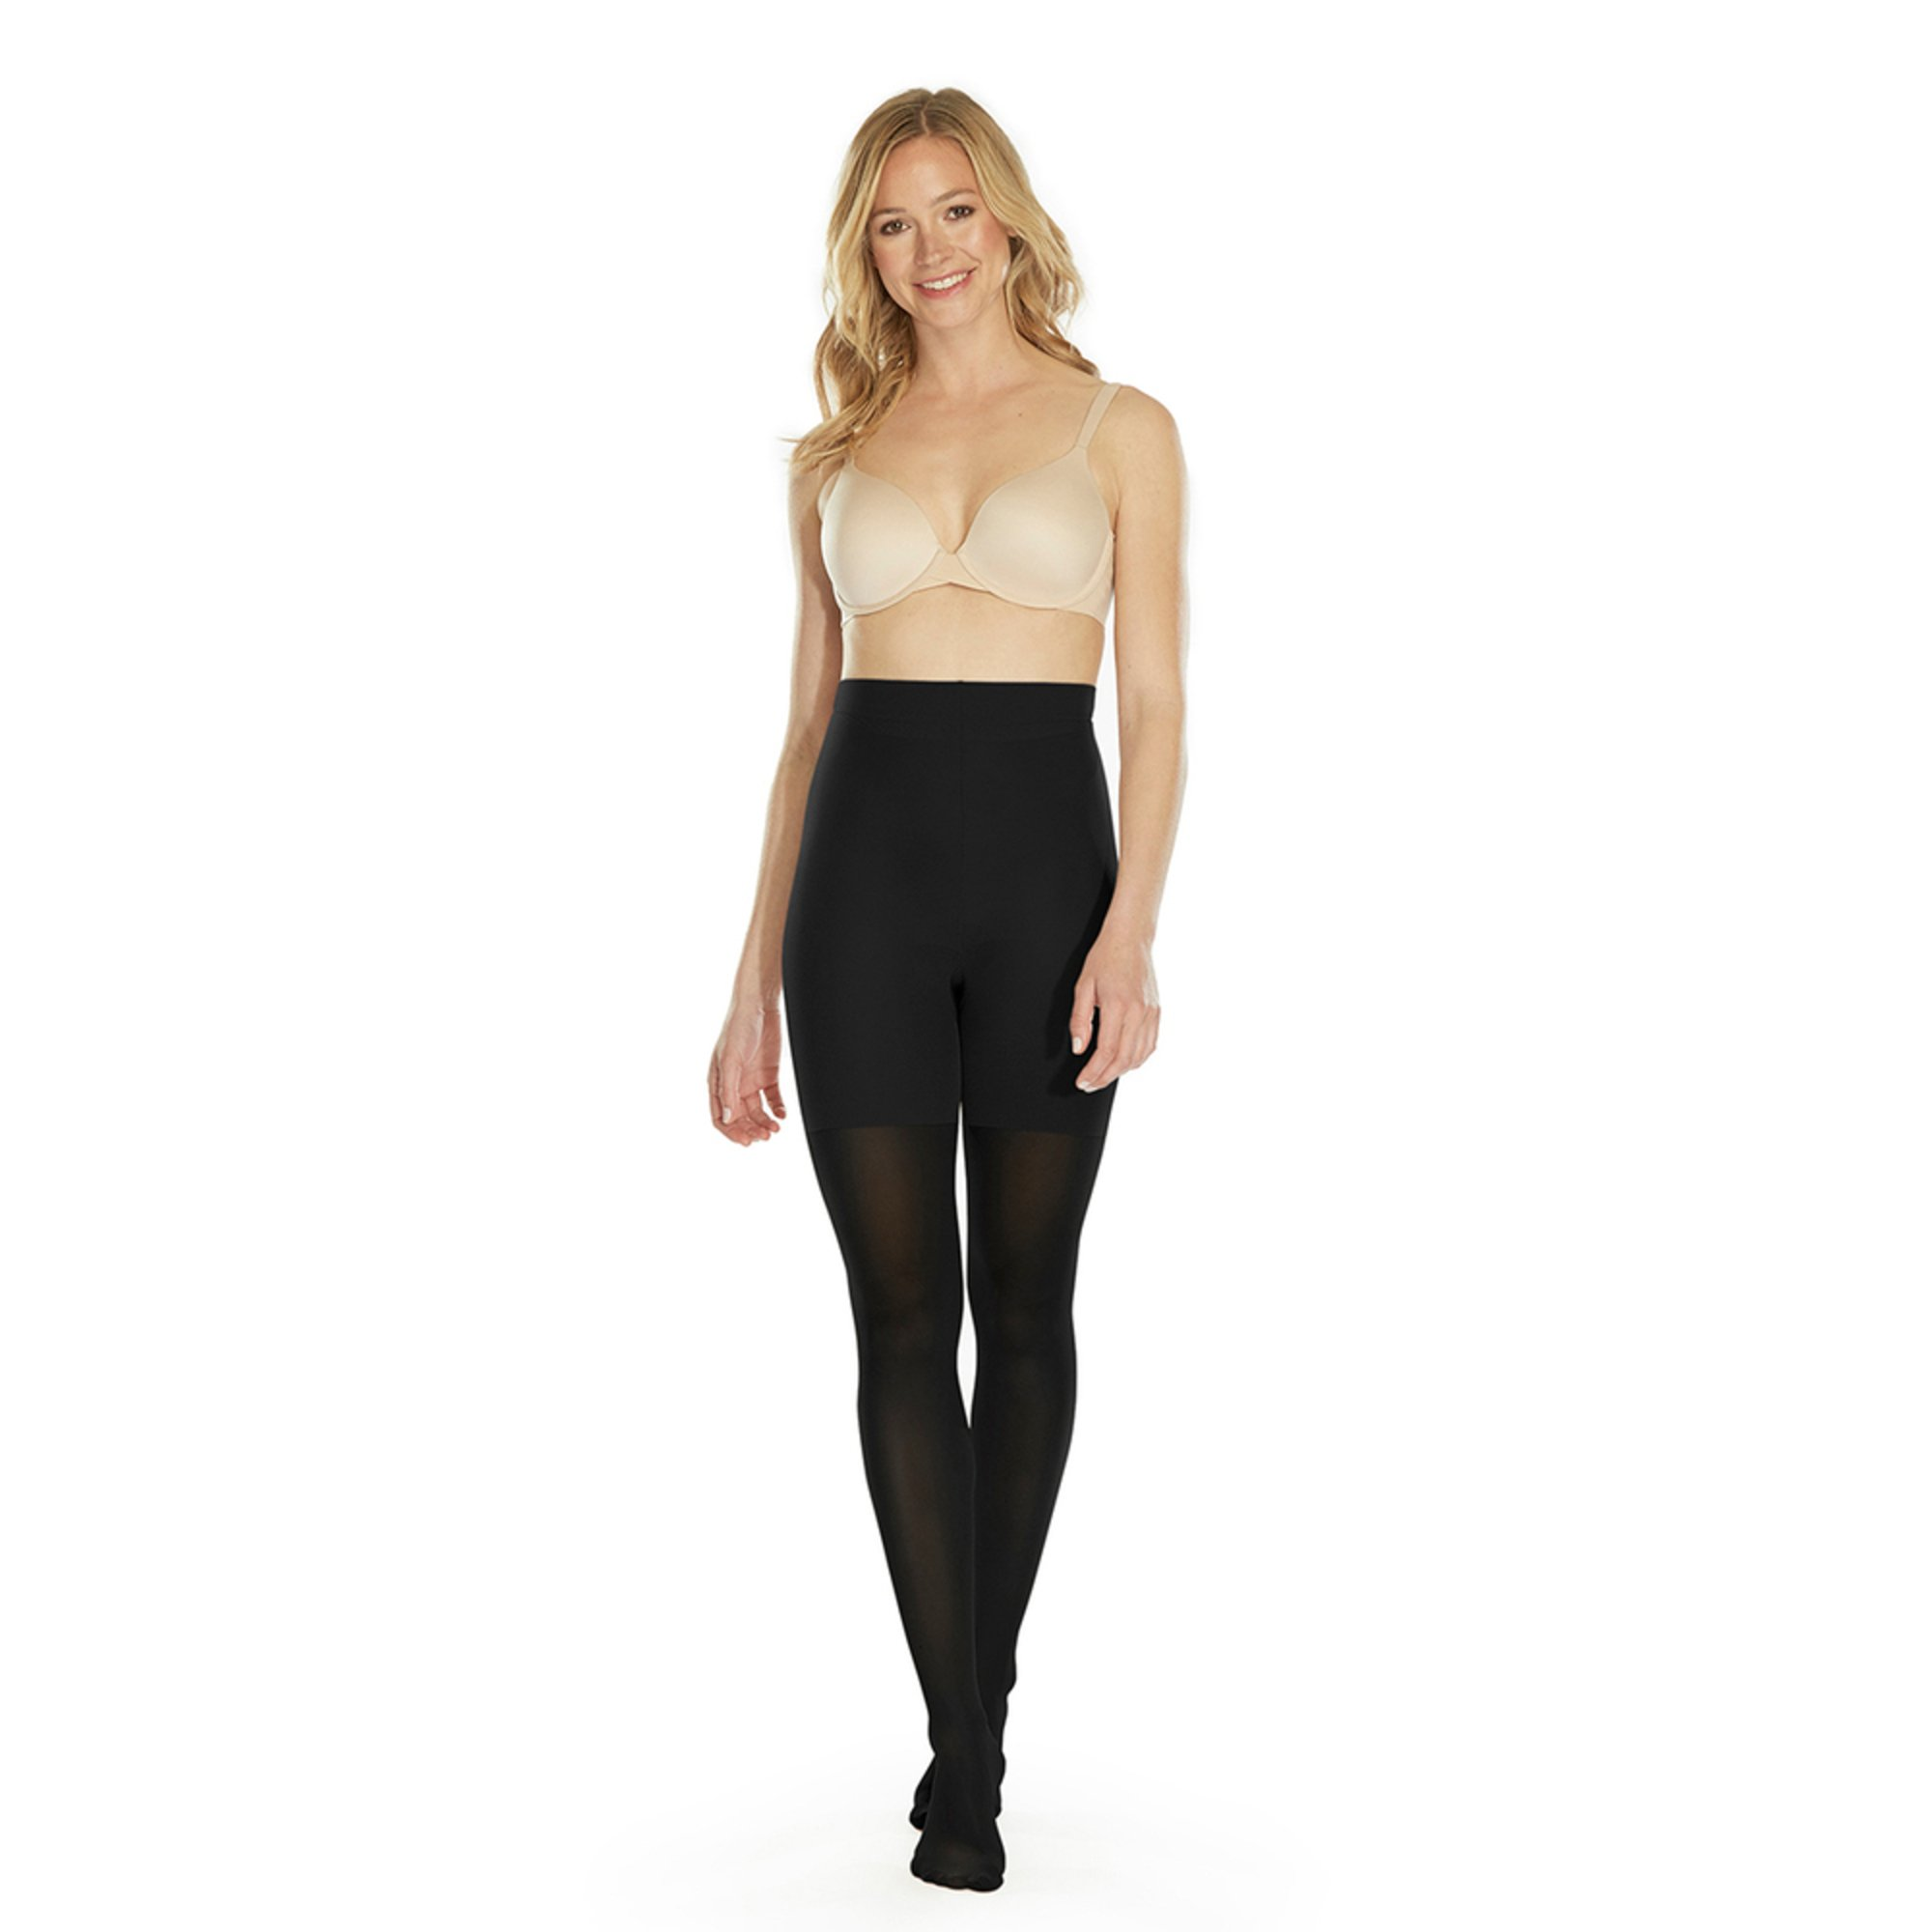 1e3e06a88f2e3 Red Hot By Spanx Shaping Pantyhose Black | Leggings & Tights ...